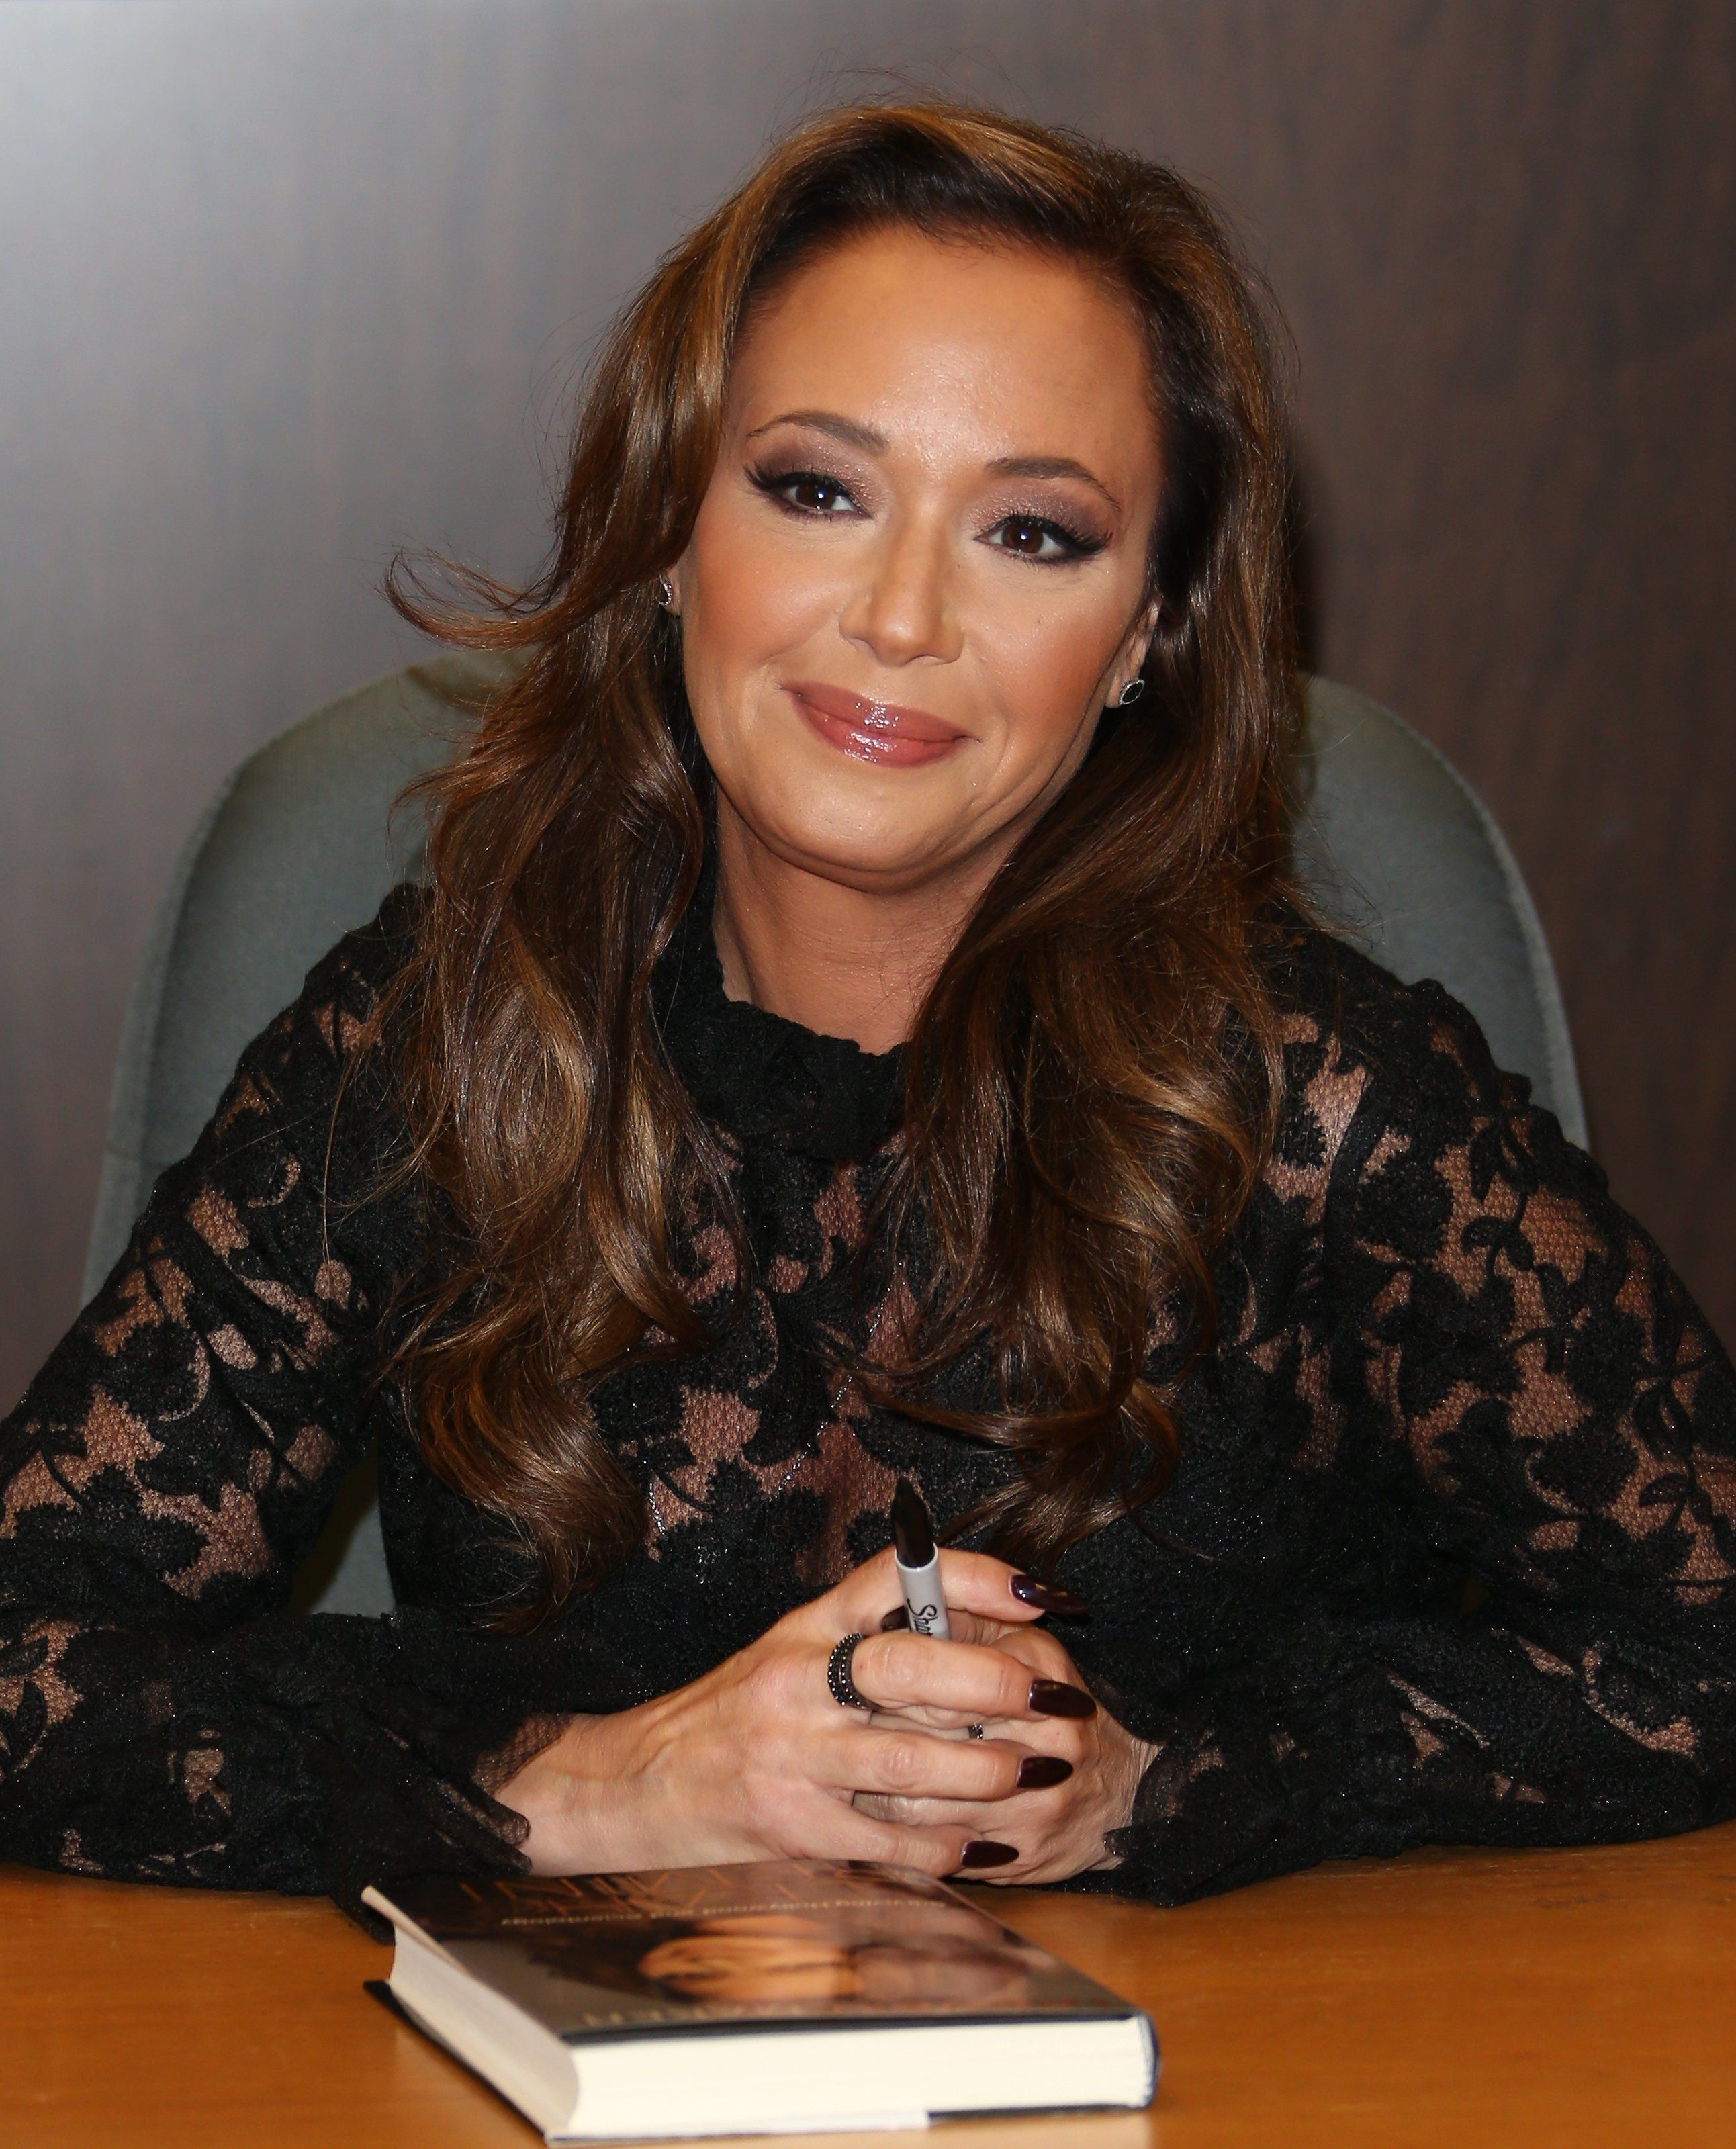 LOS ANGELES, CA - DECEMBER 08: Leah Remini signs copies of her new book 'Troublemaker: Surviving Hollywood and Scientology' on December 8, 2015 in Los Angeles, California. (Photo by JB Lacroix/WireImage)